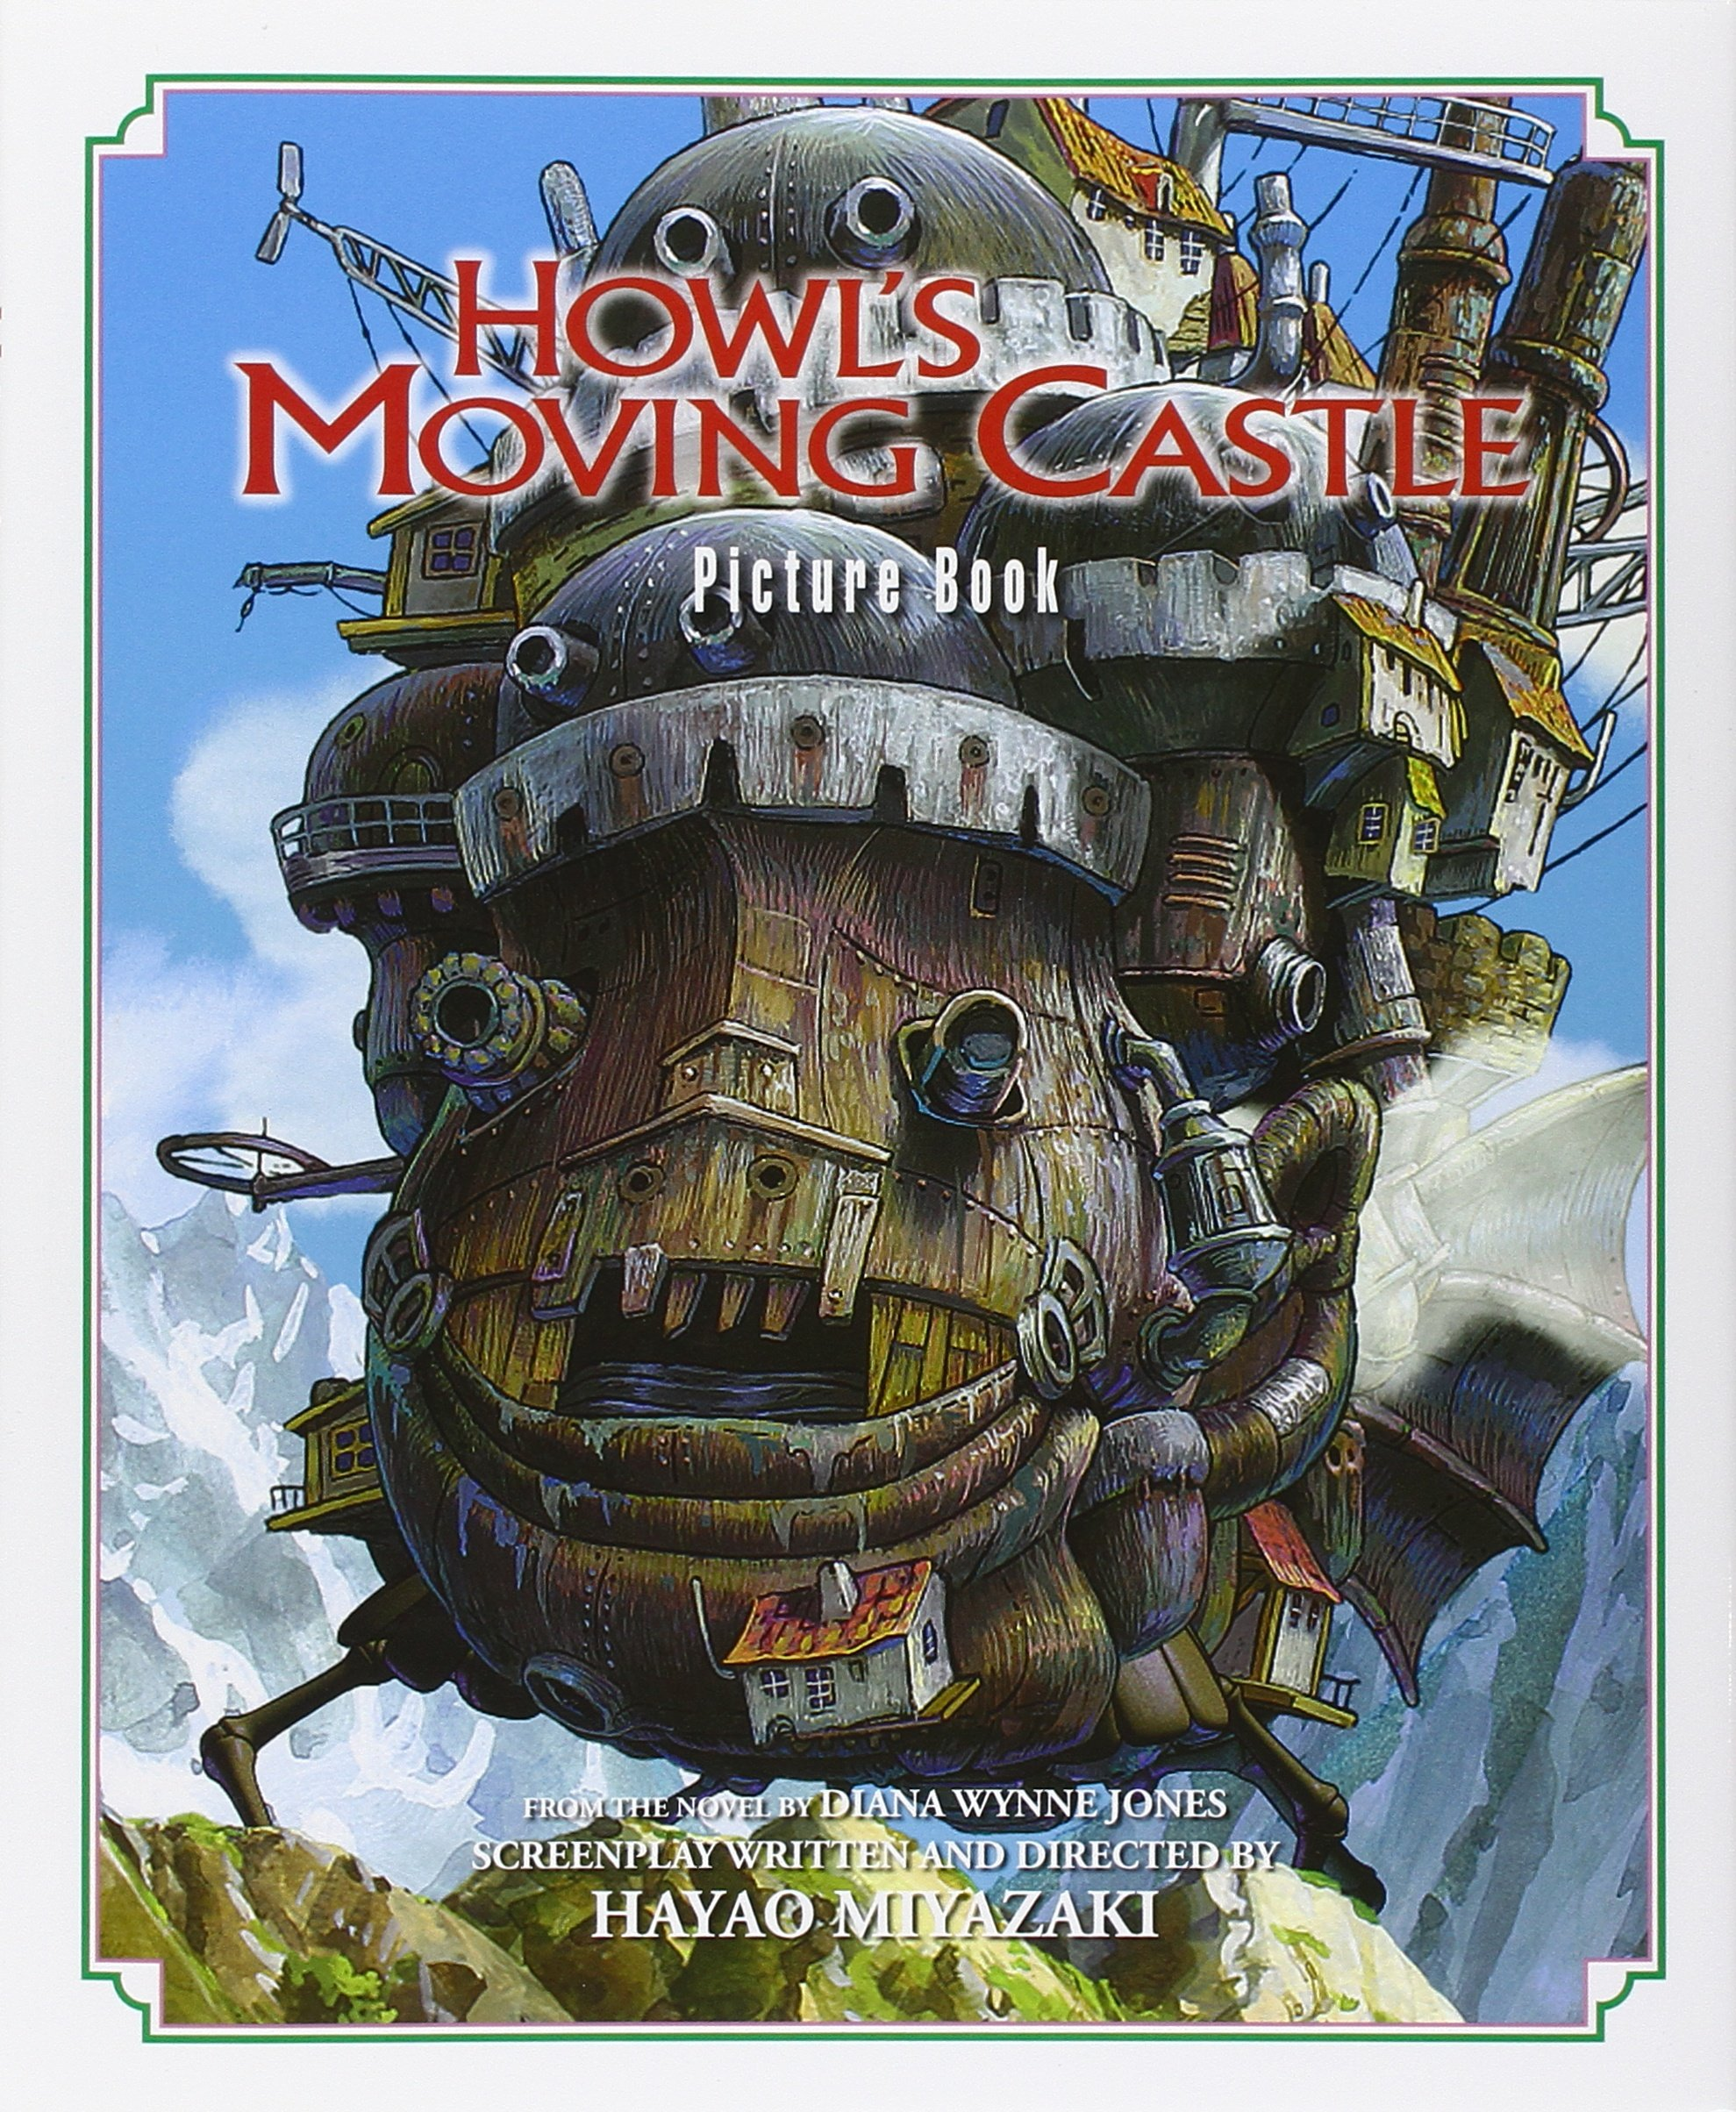 Image result for howl's moving castle book